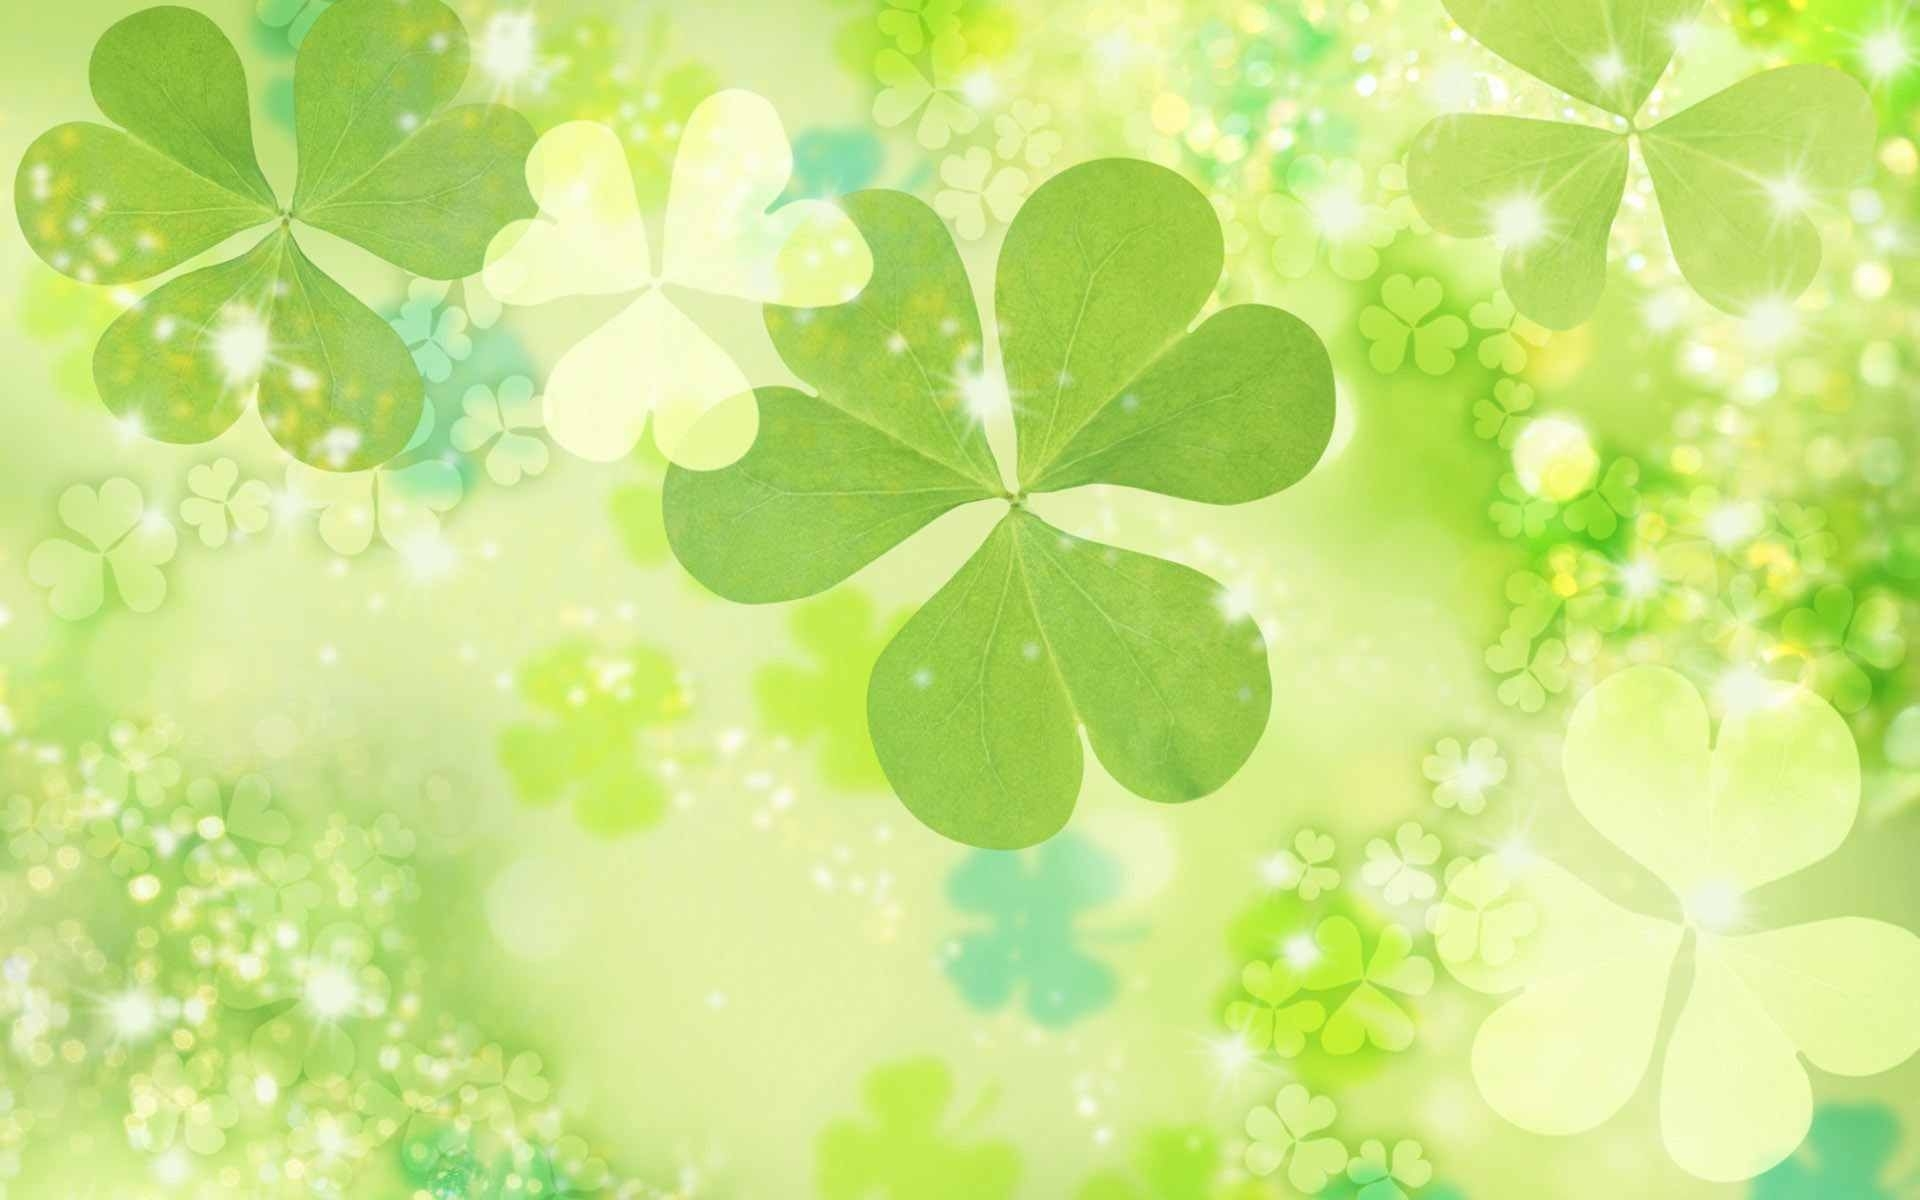 10 Latest Saint Patricks Day Backgrounds FULL HD 1080p For PC Background